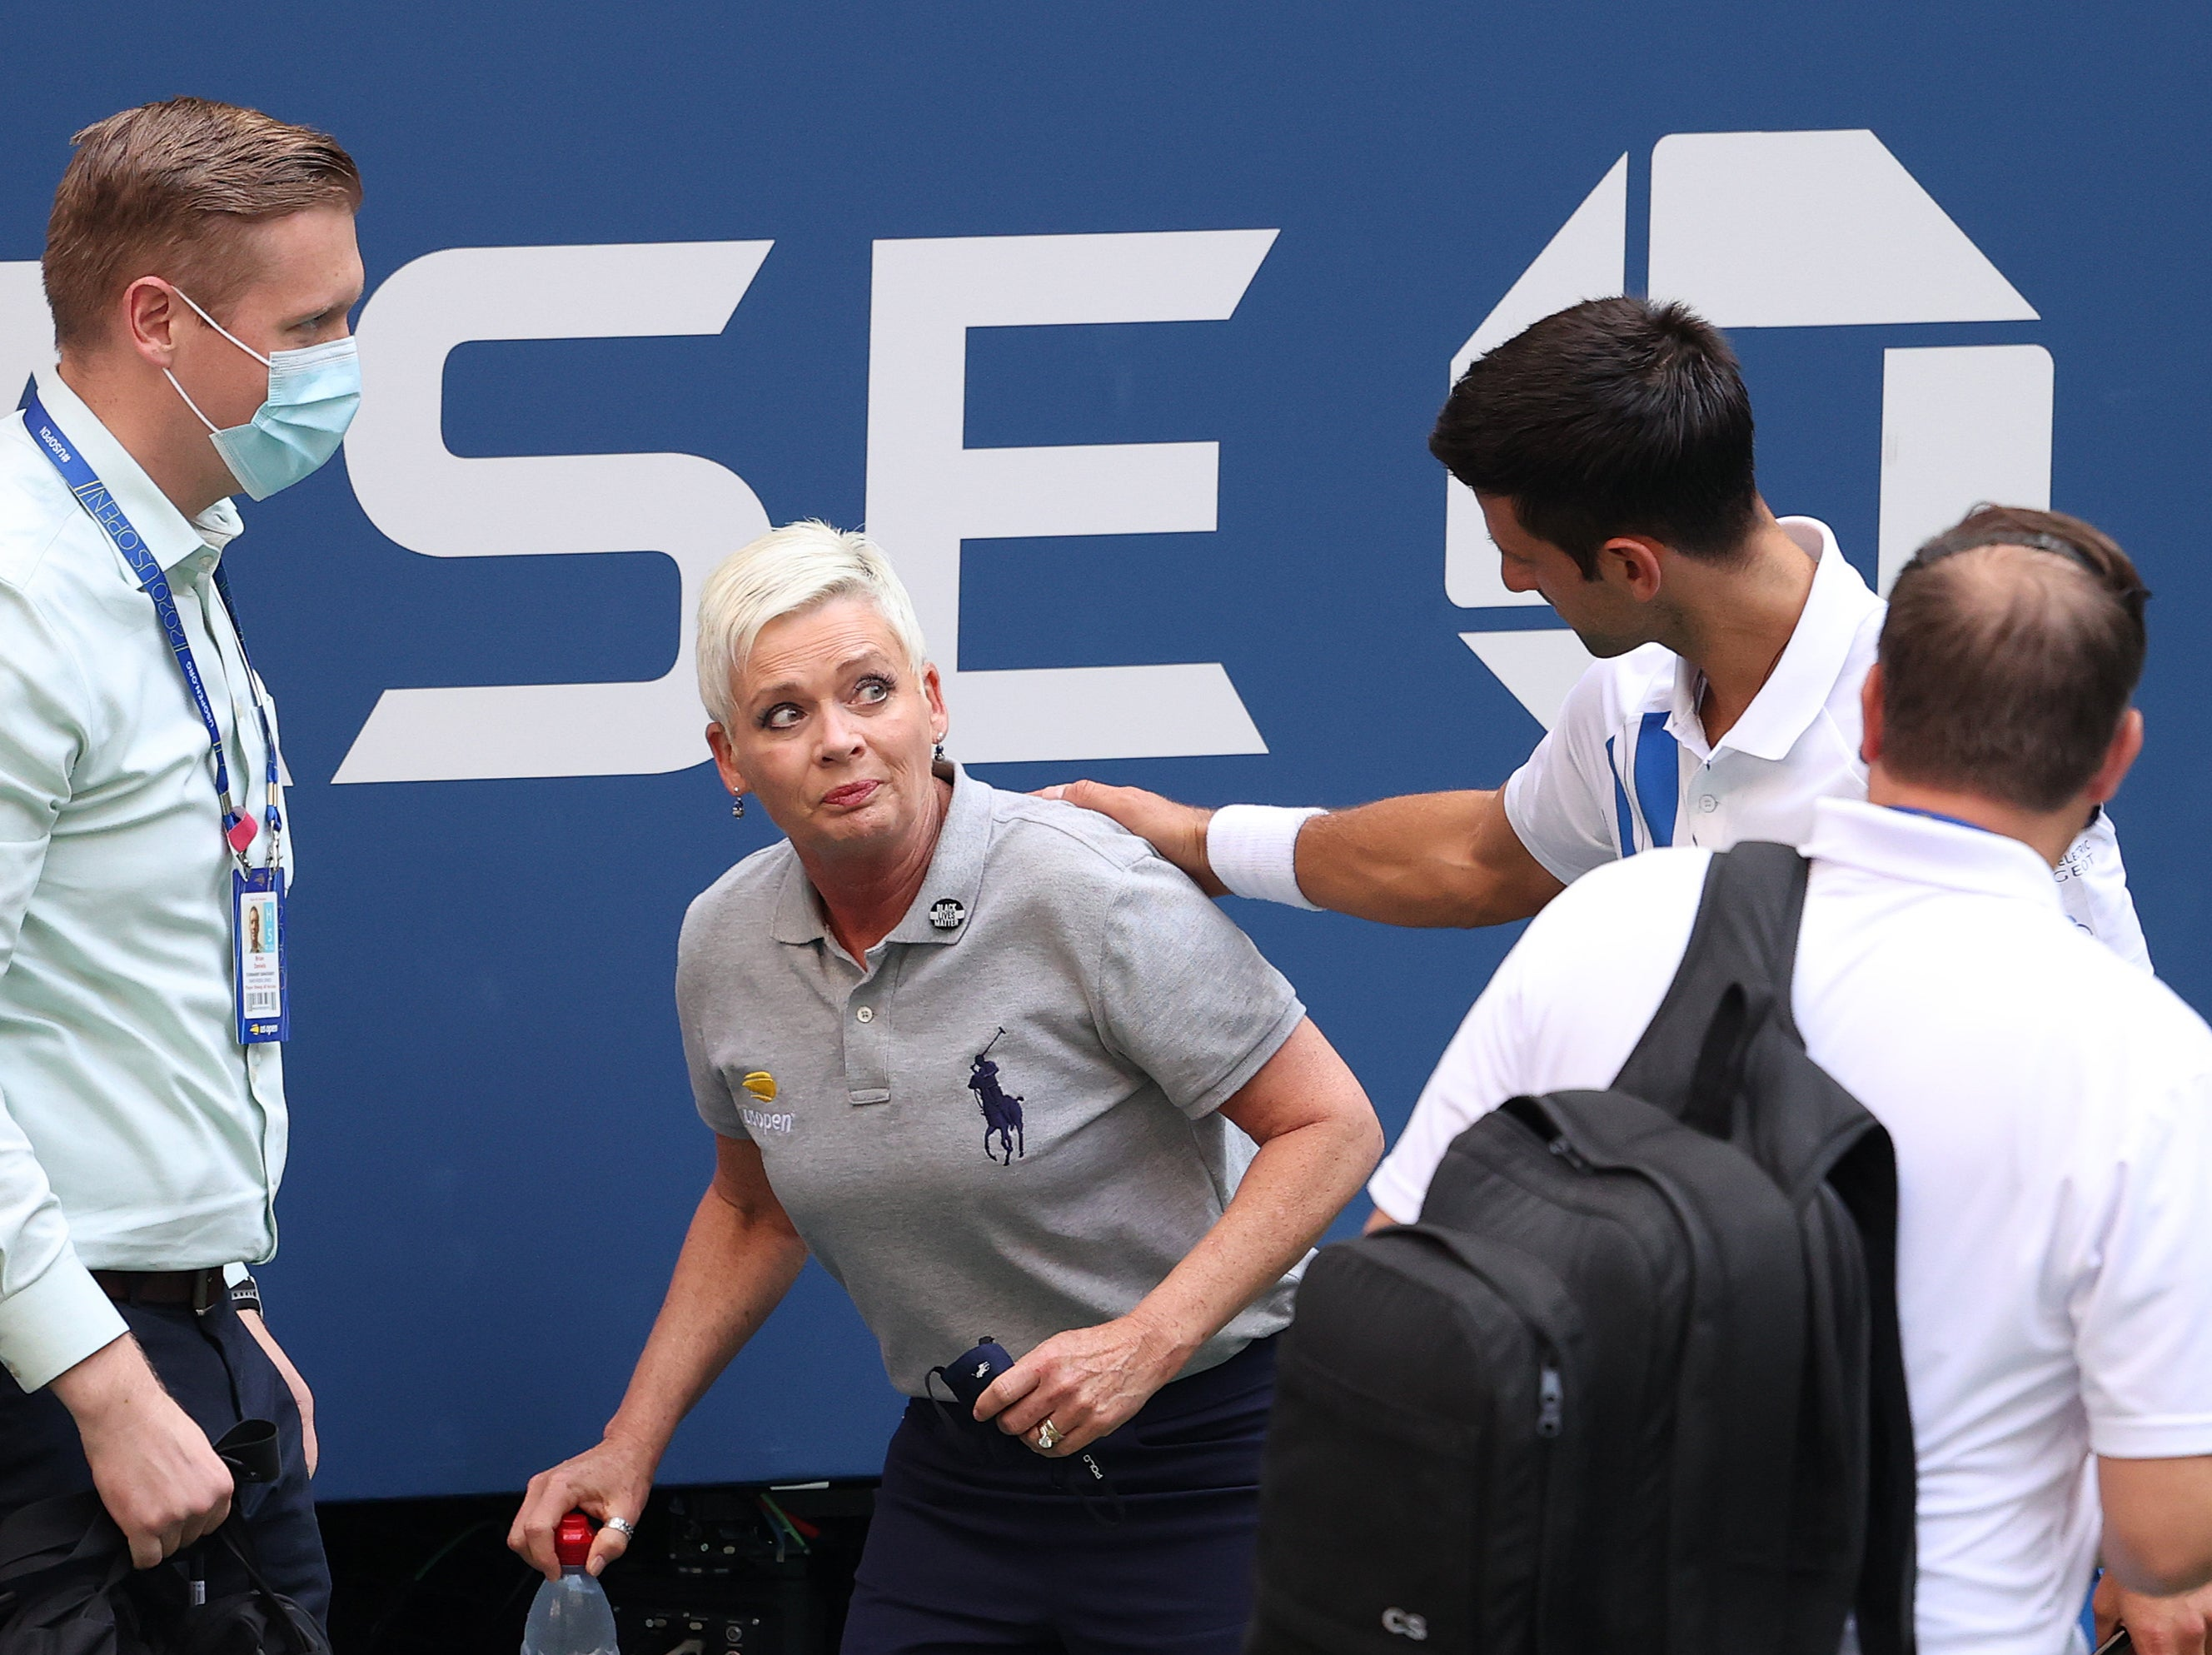 Novak Djokovic Disqualified From Us Open After Hitting Line Judge With Ball The Independent